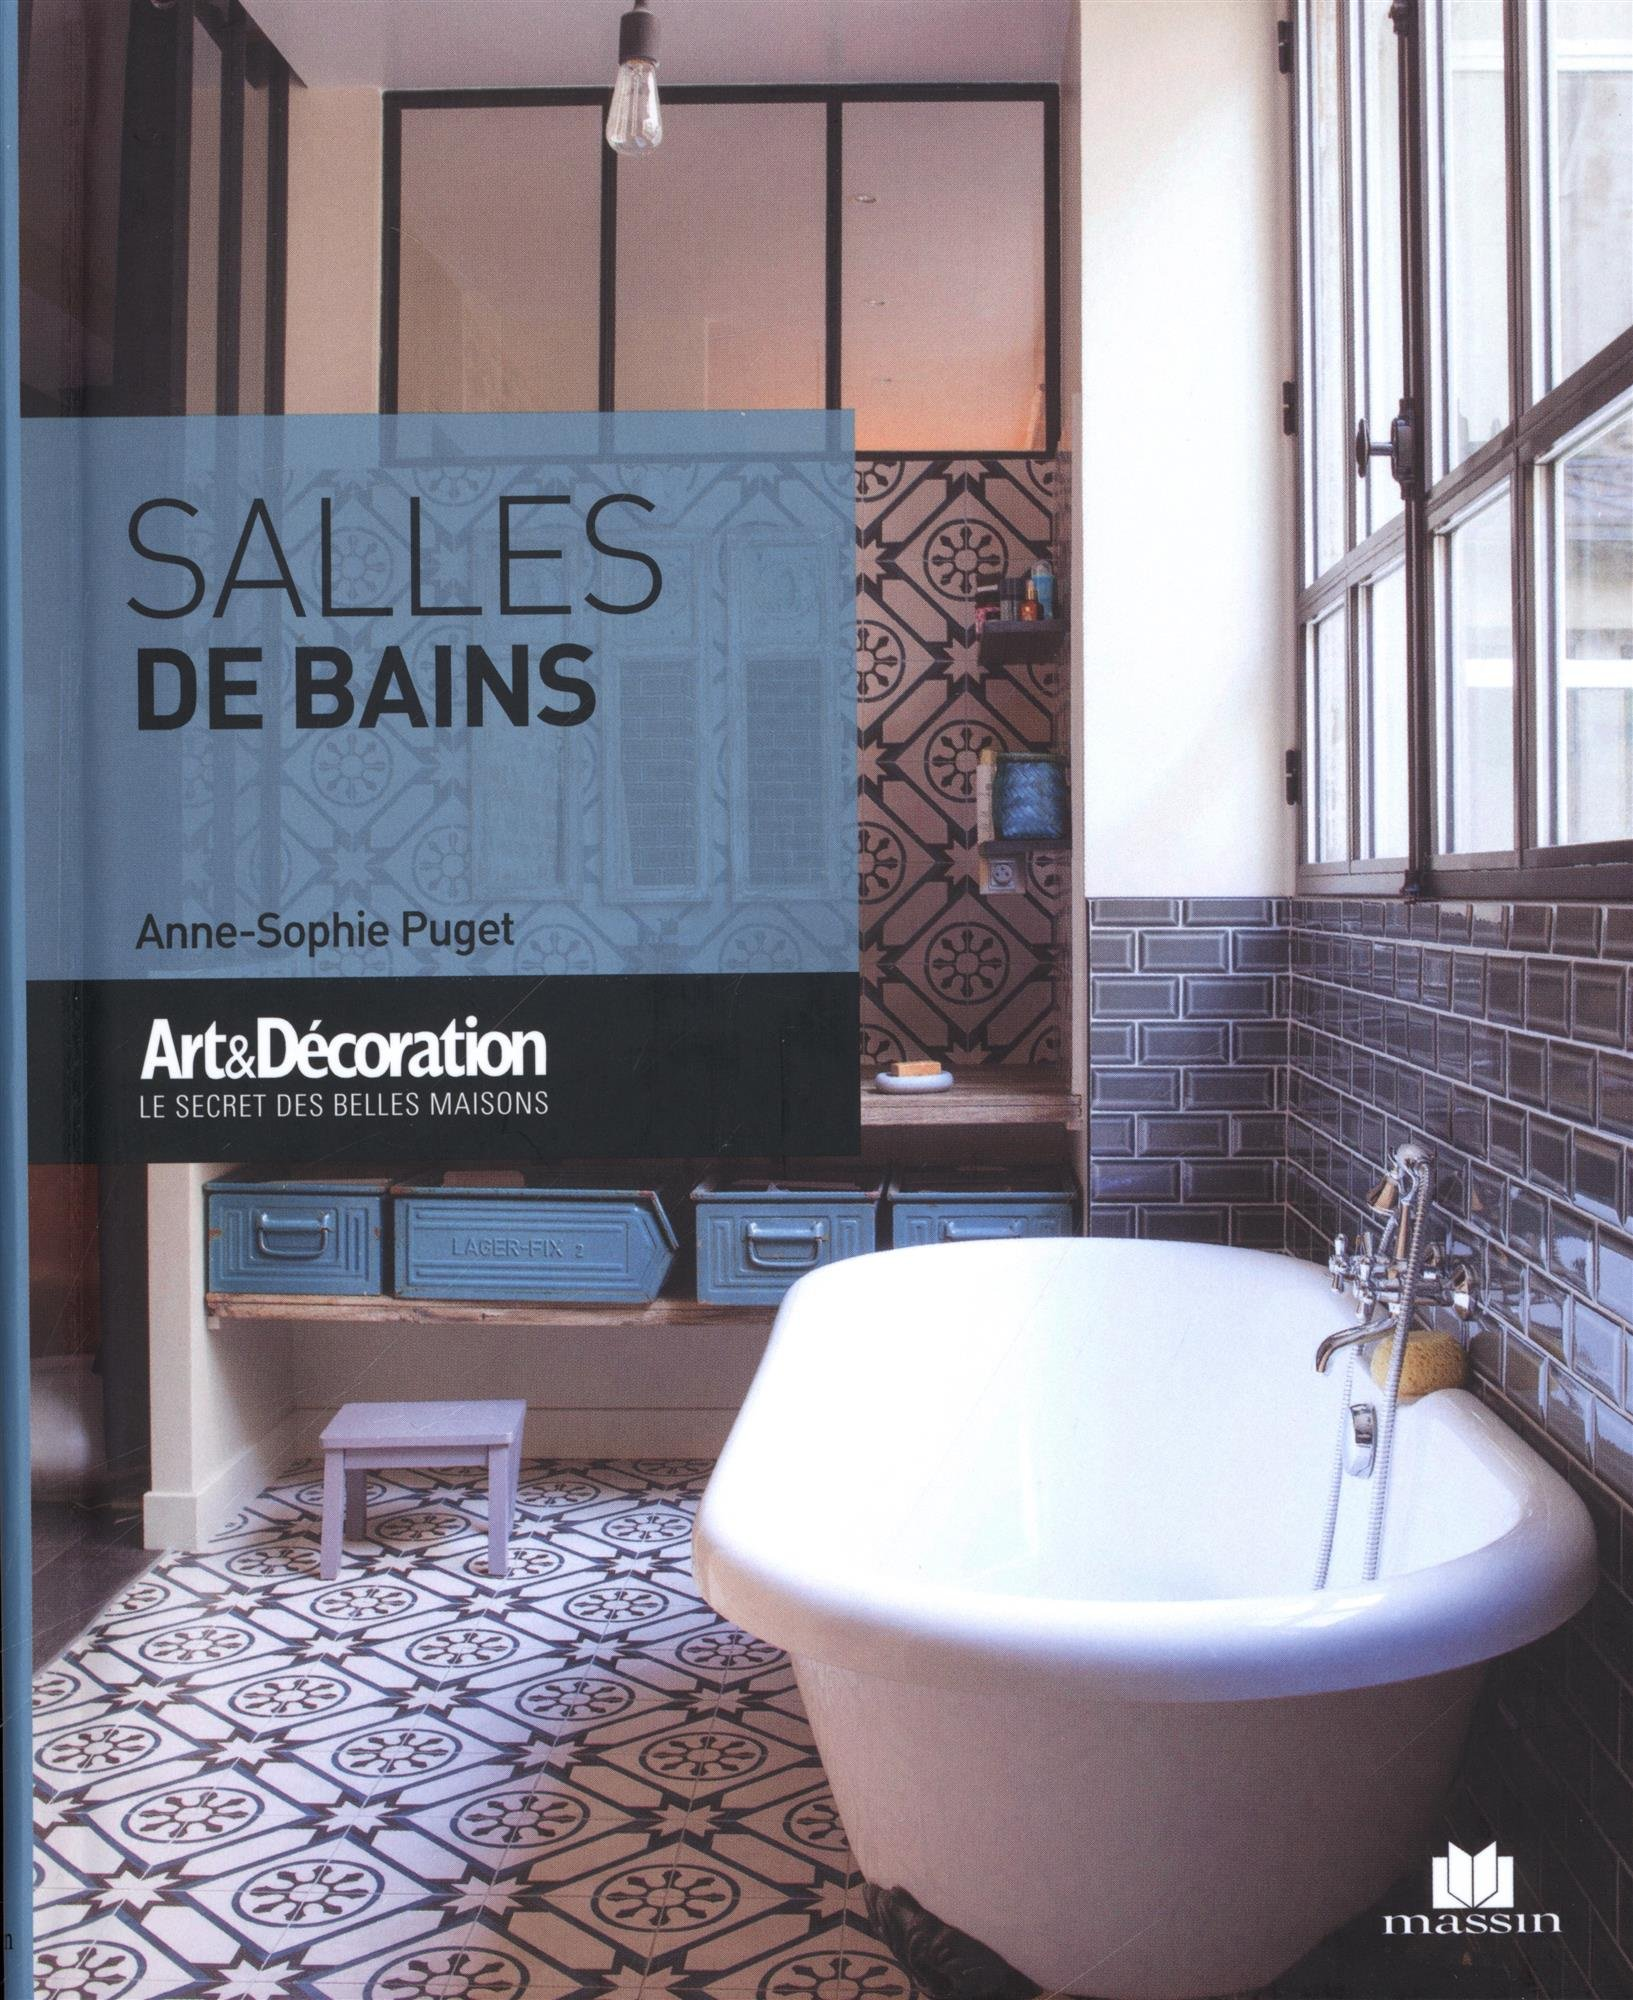 Amazing Salle De Bains In French